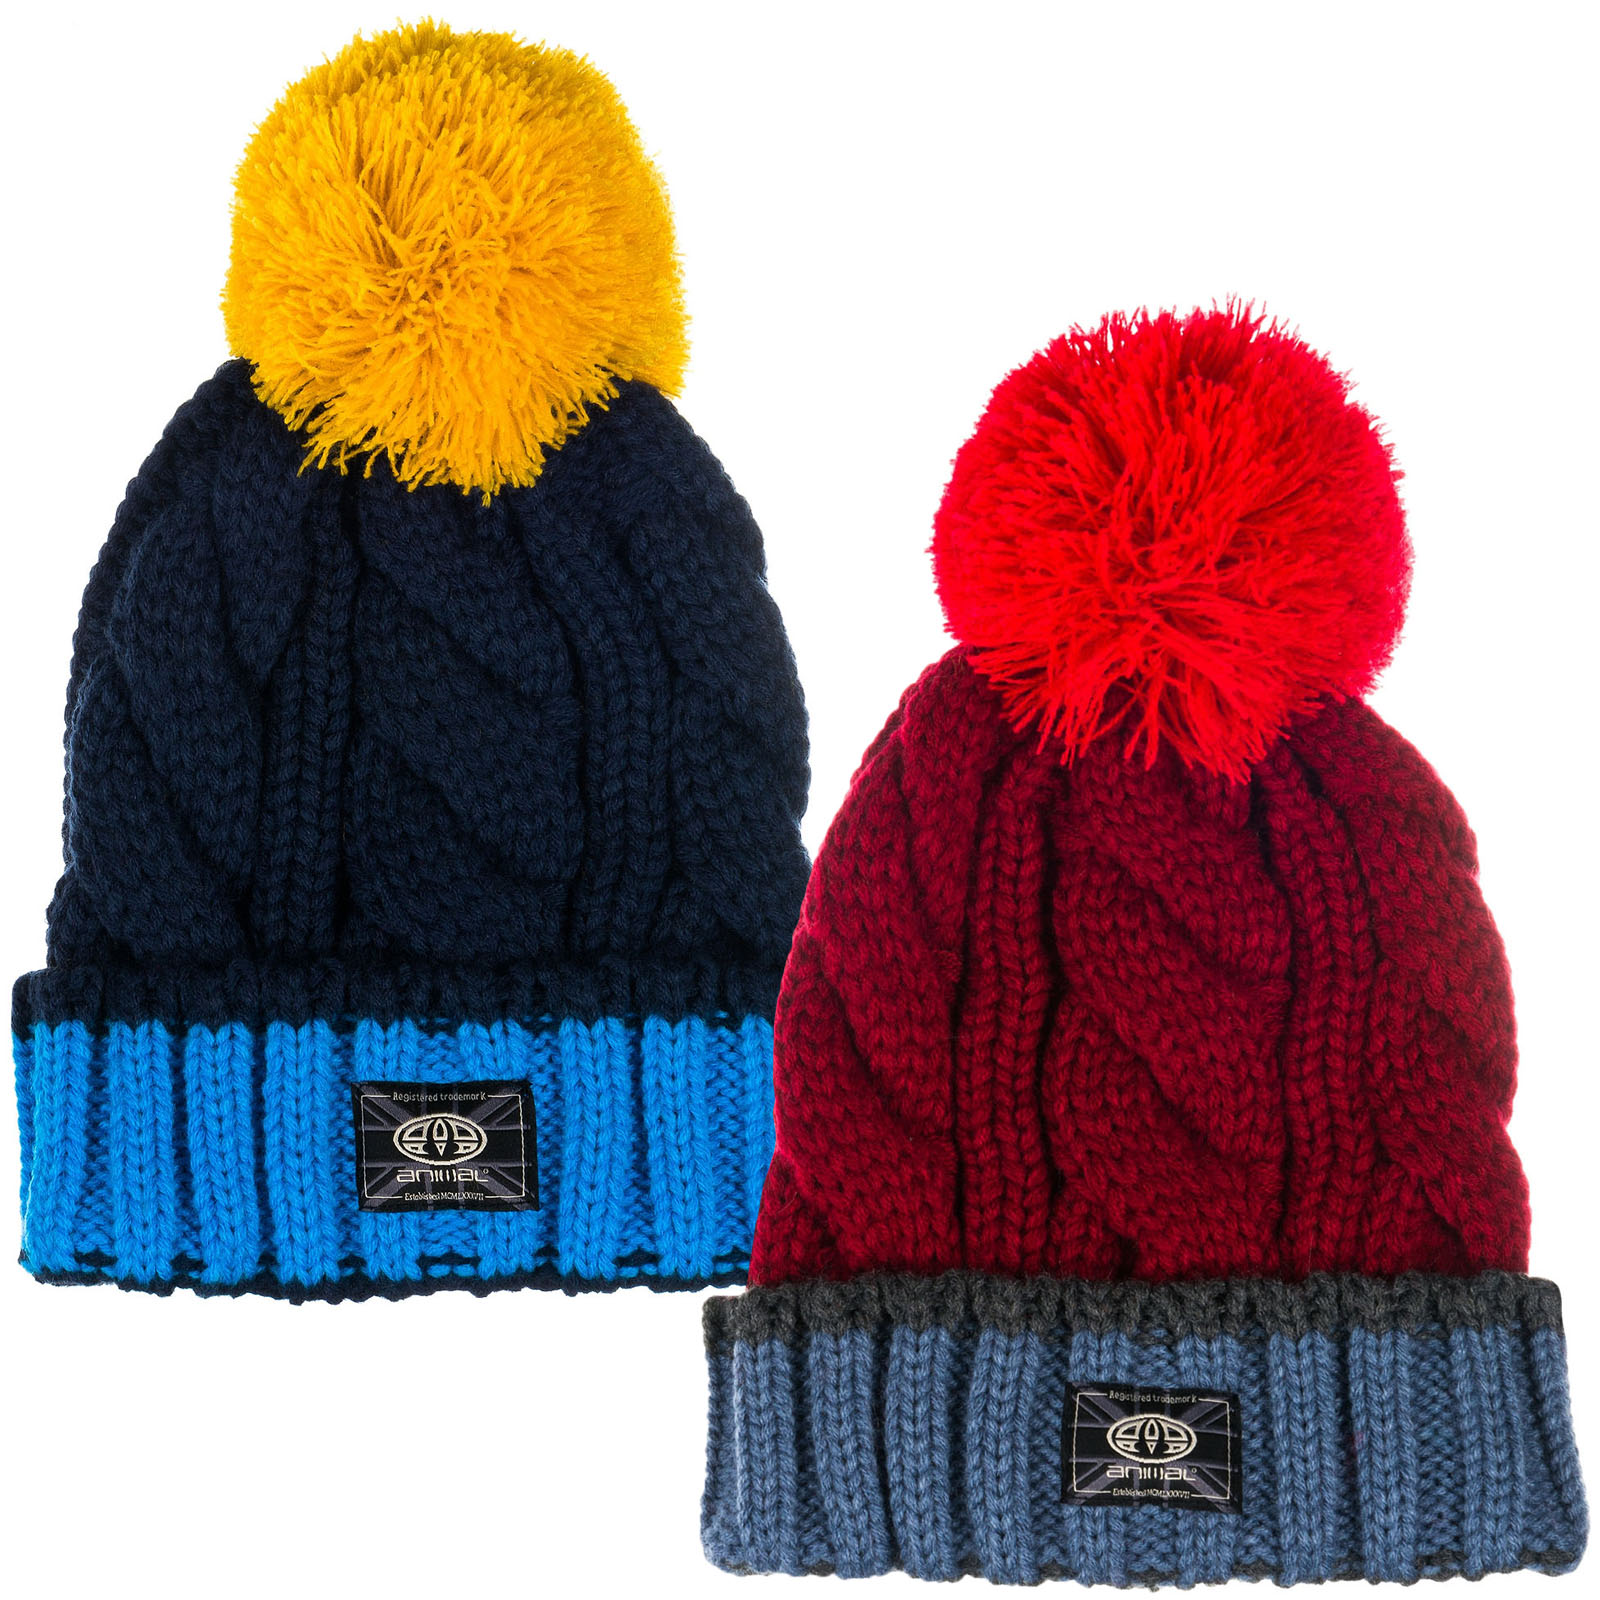 Details about Animal Boys Kids Childrens Galie Cable Knit Bobble Beanie Hat  - One Size 5ae28d24e8d